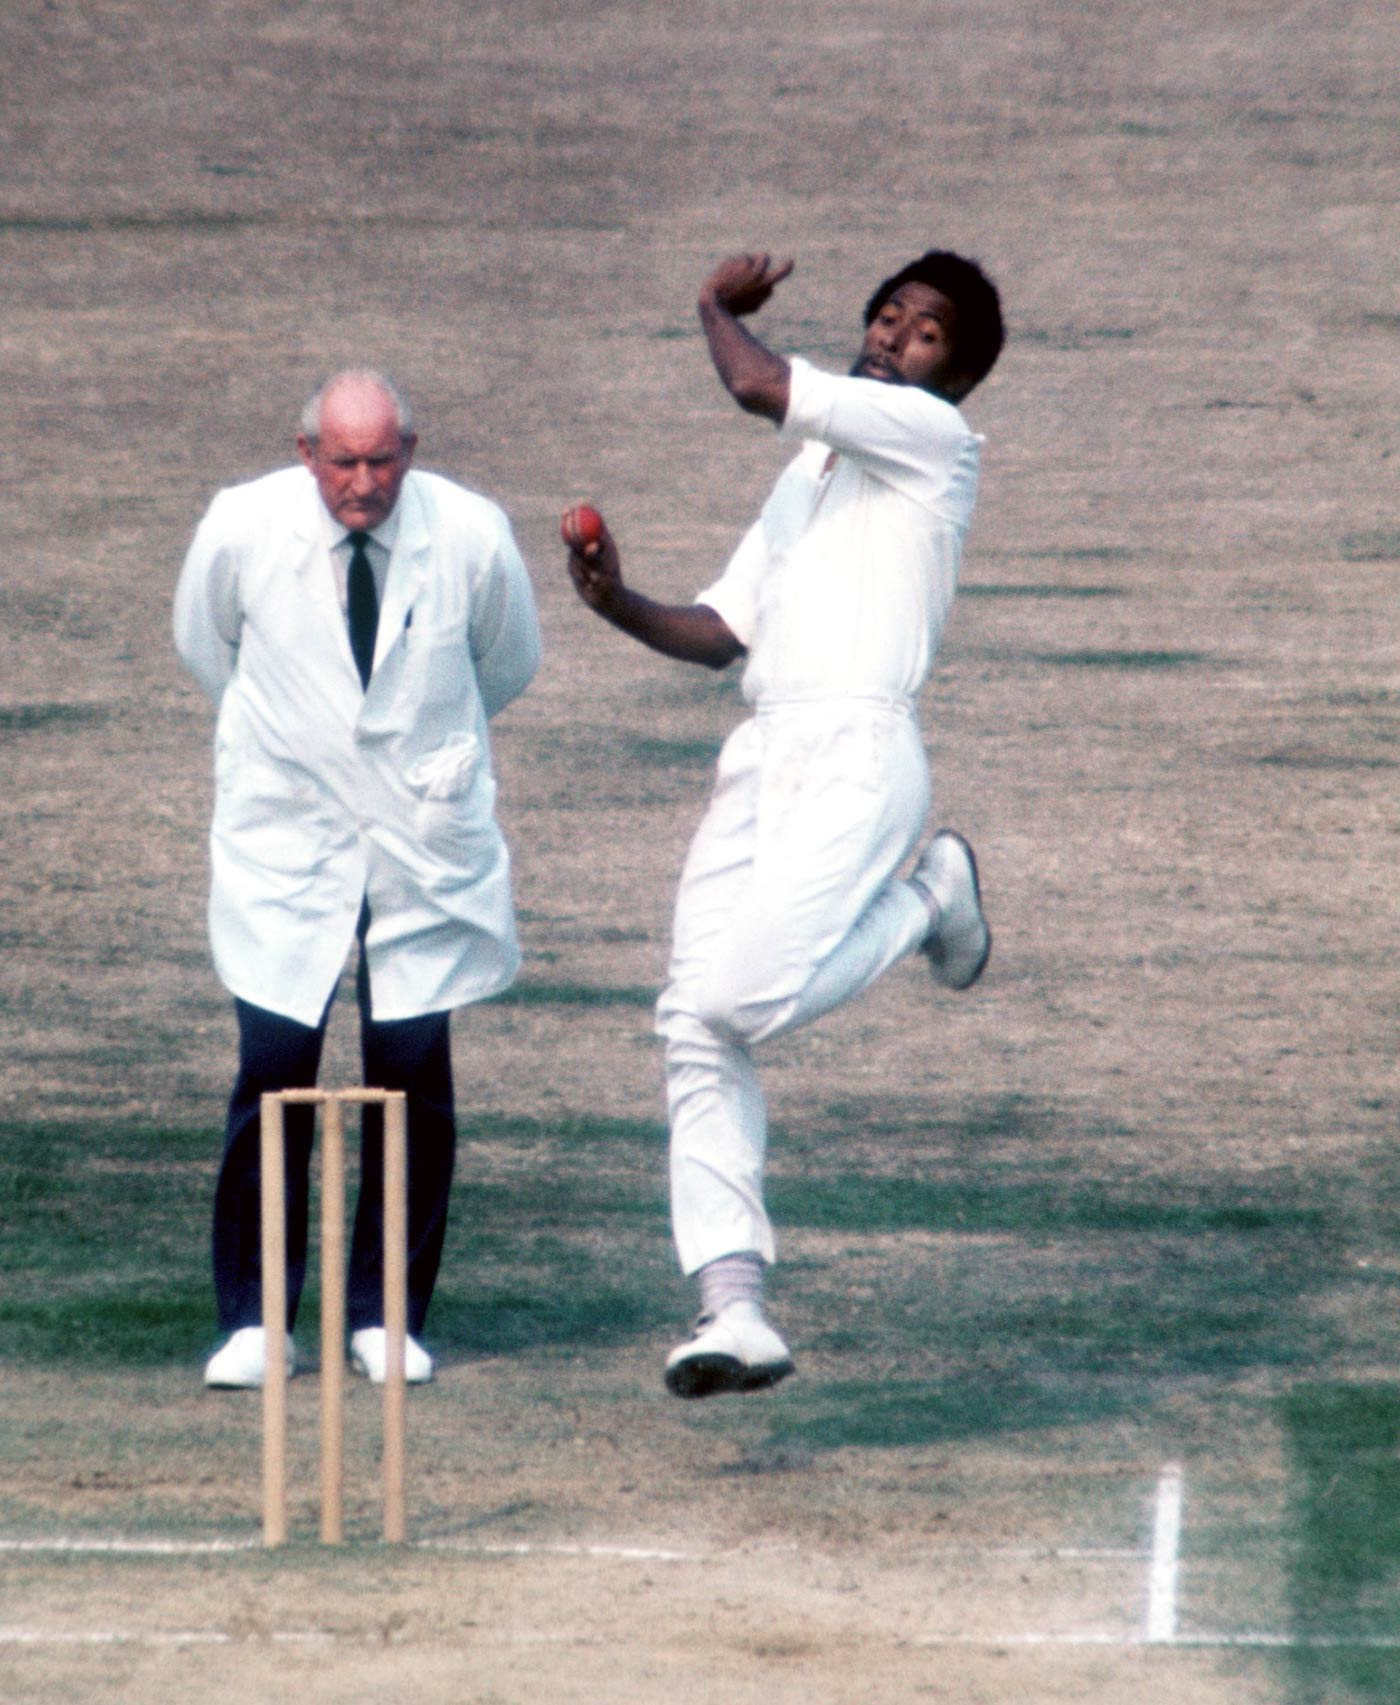 Bringing the fury at The Oval in 1976